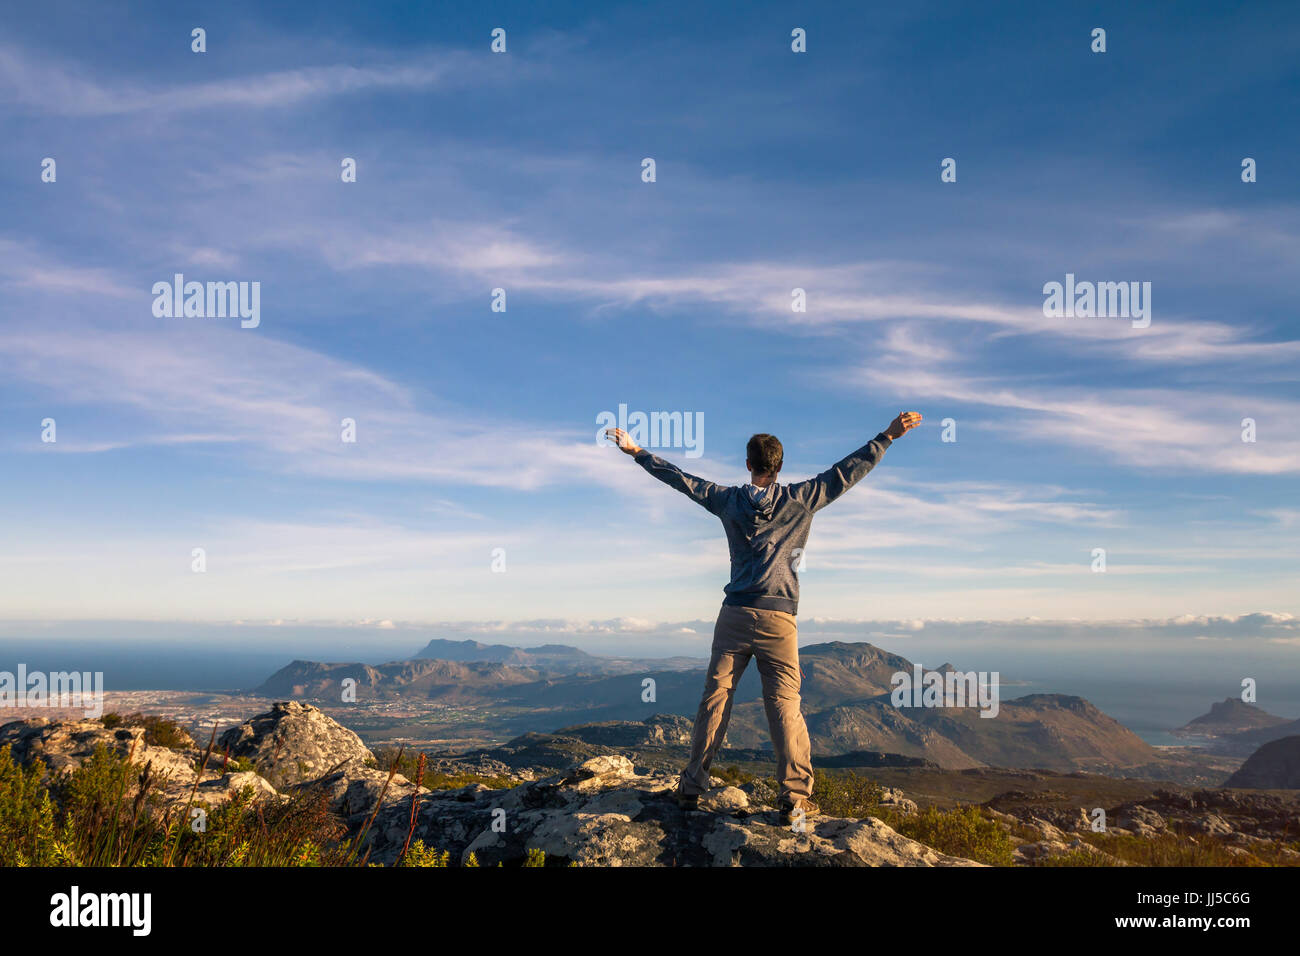 man standing with raised hands on top of Table mountain in Cape Town, South Africa - Stock Image